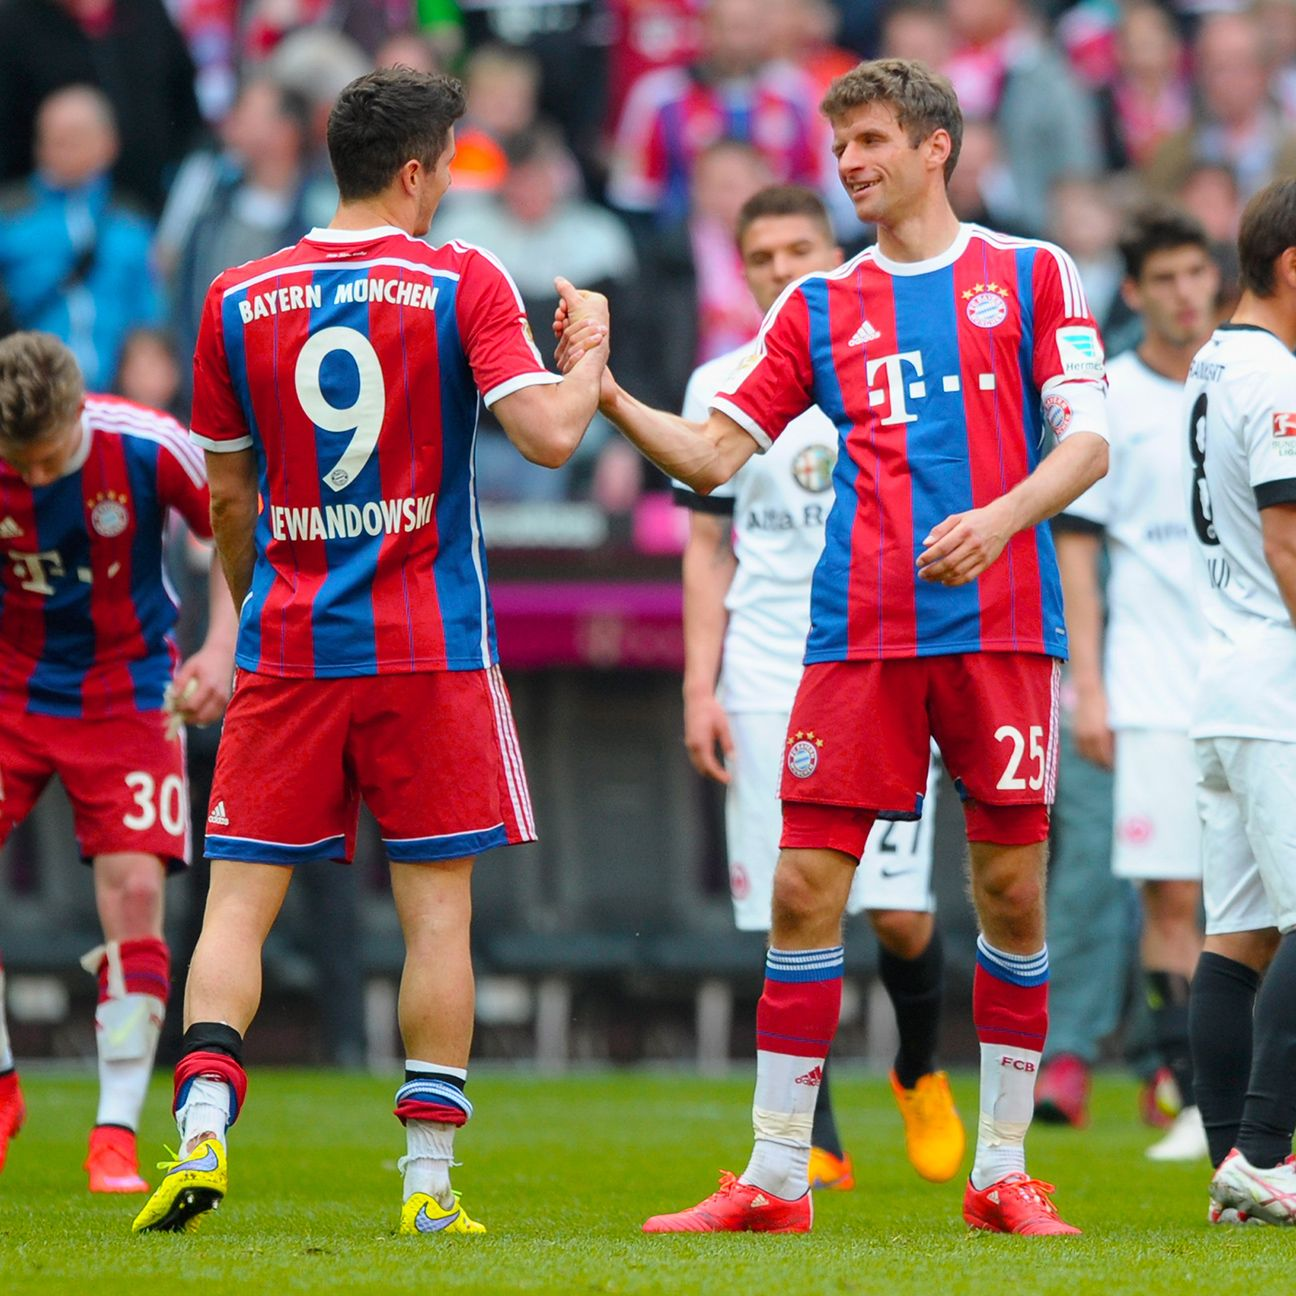 Robert Lewandowski and Thomas Muller teamed up to put Bayern on the cusp of another Bundesliga title.